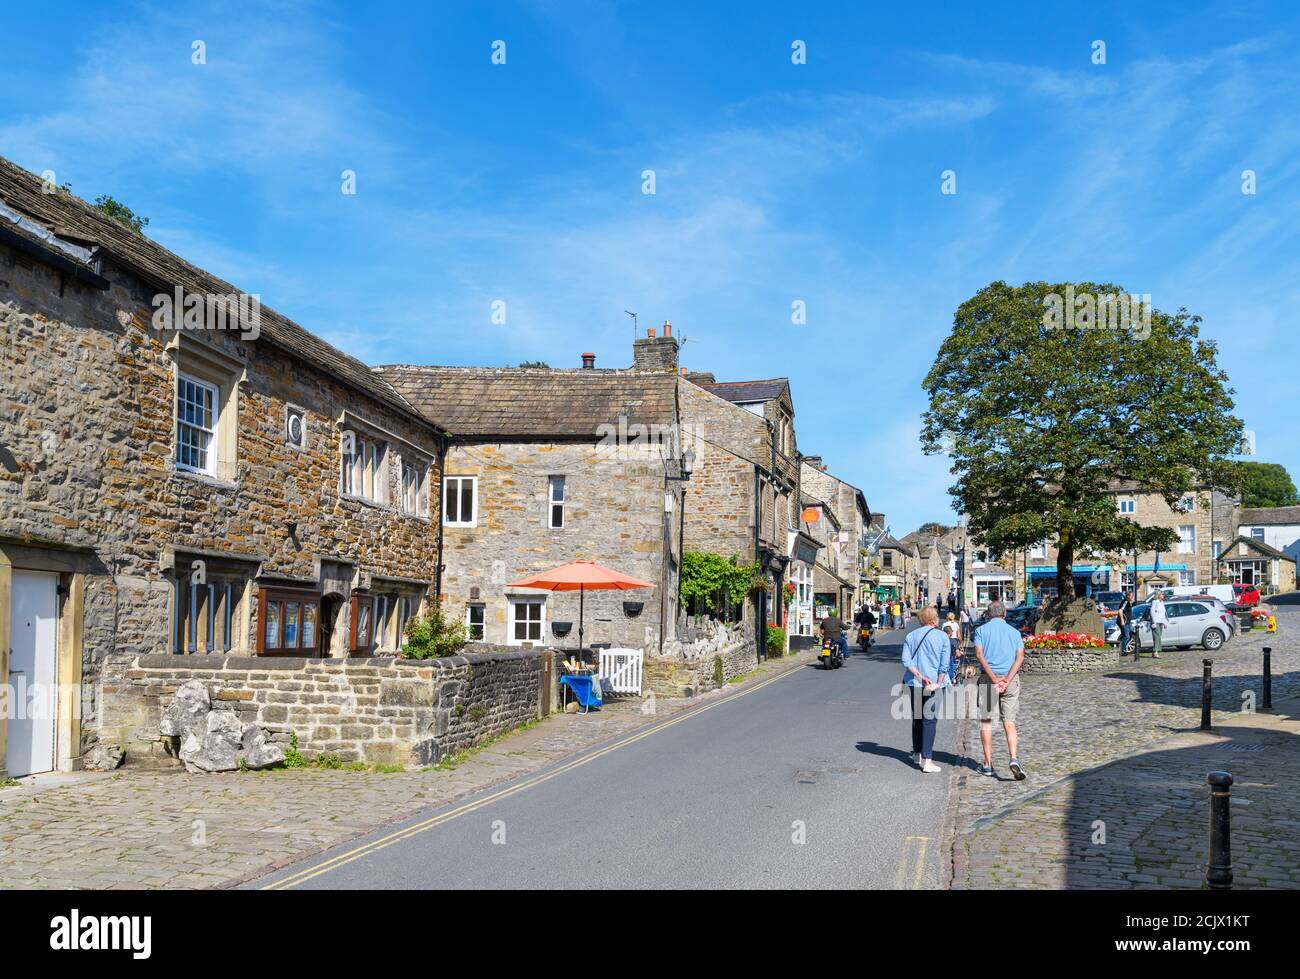 The Square and Main Street in the  traditional English village of Grassington, Wharfedale, Yorkshire Dales National Park, North Yorkshire, England, UK Stock Photo